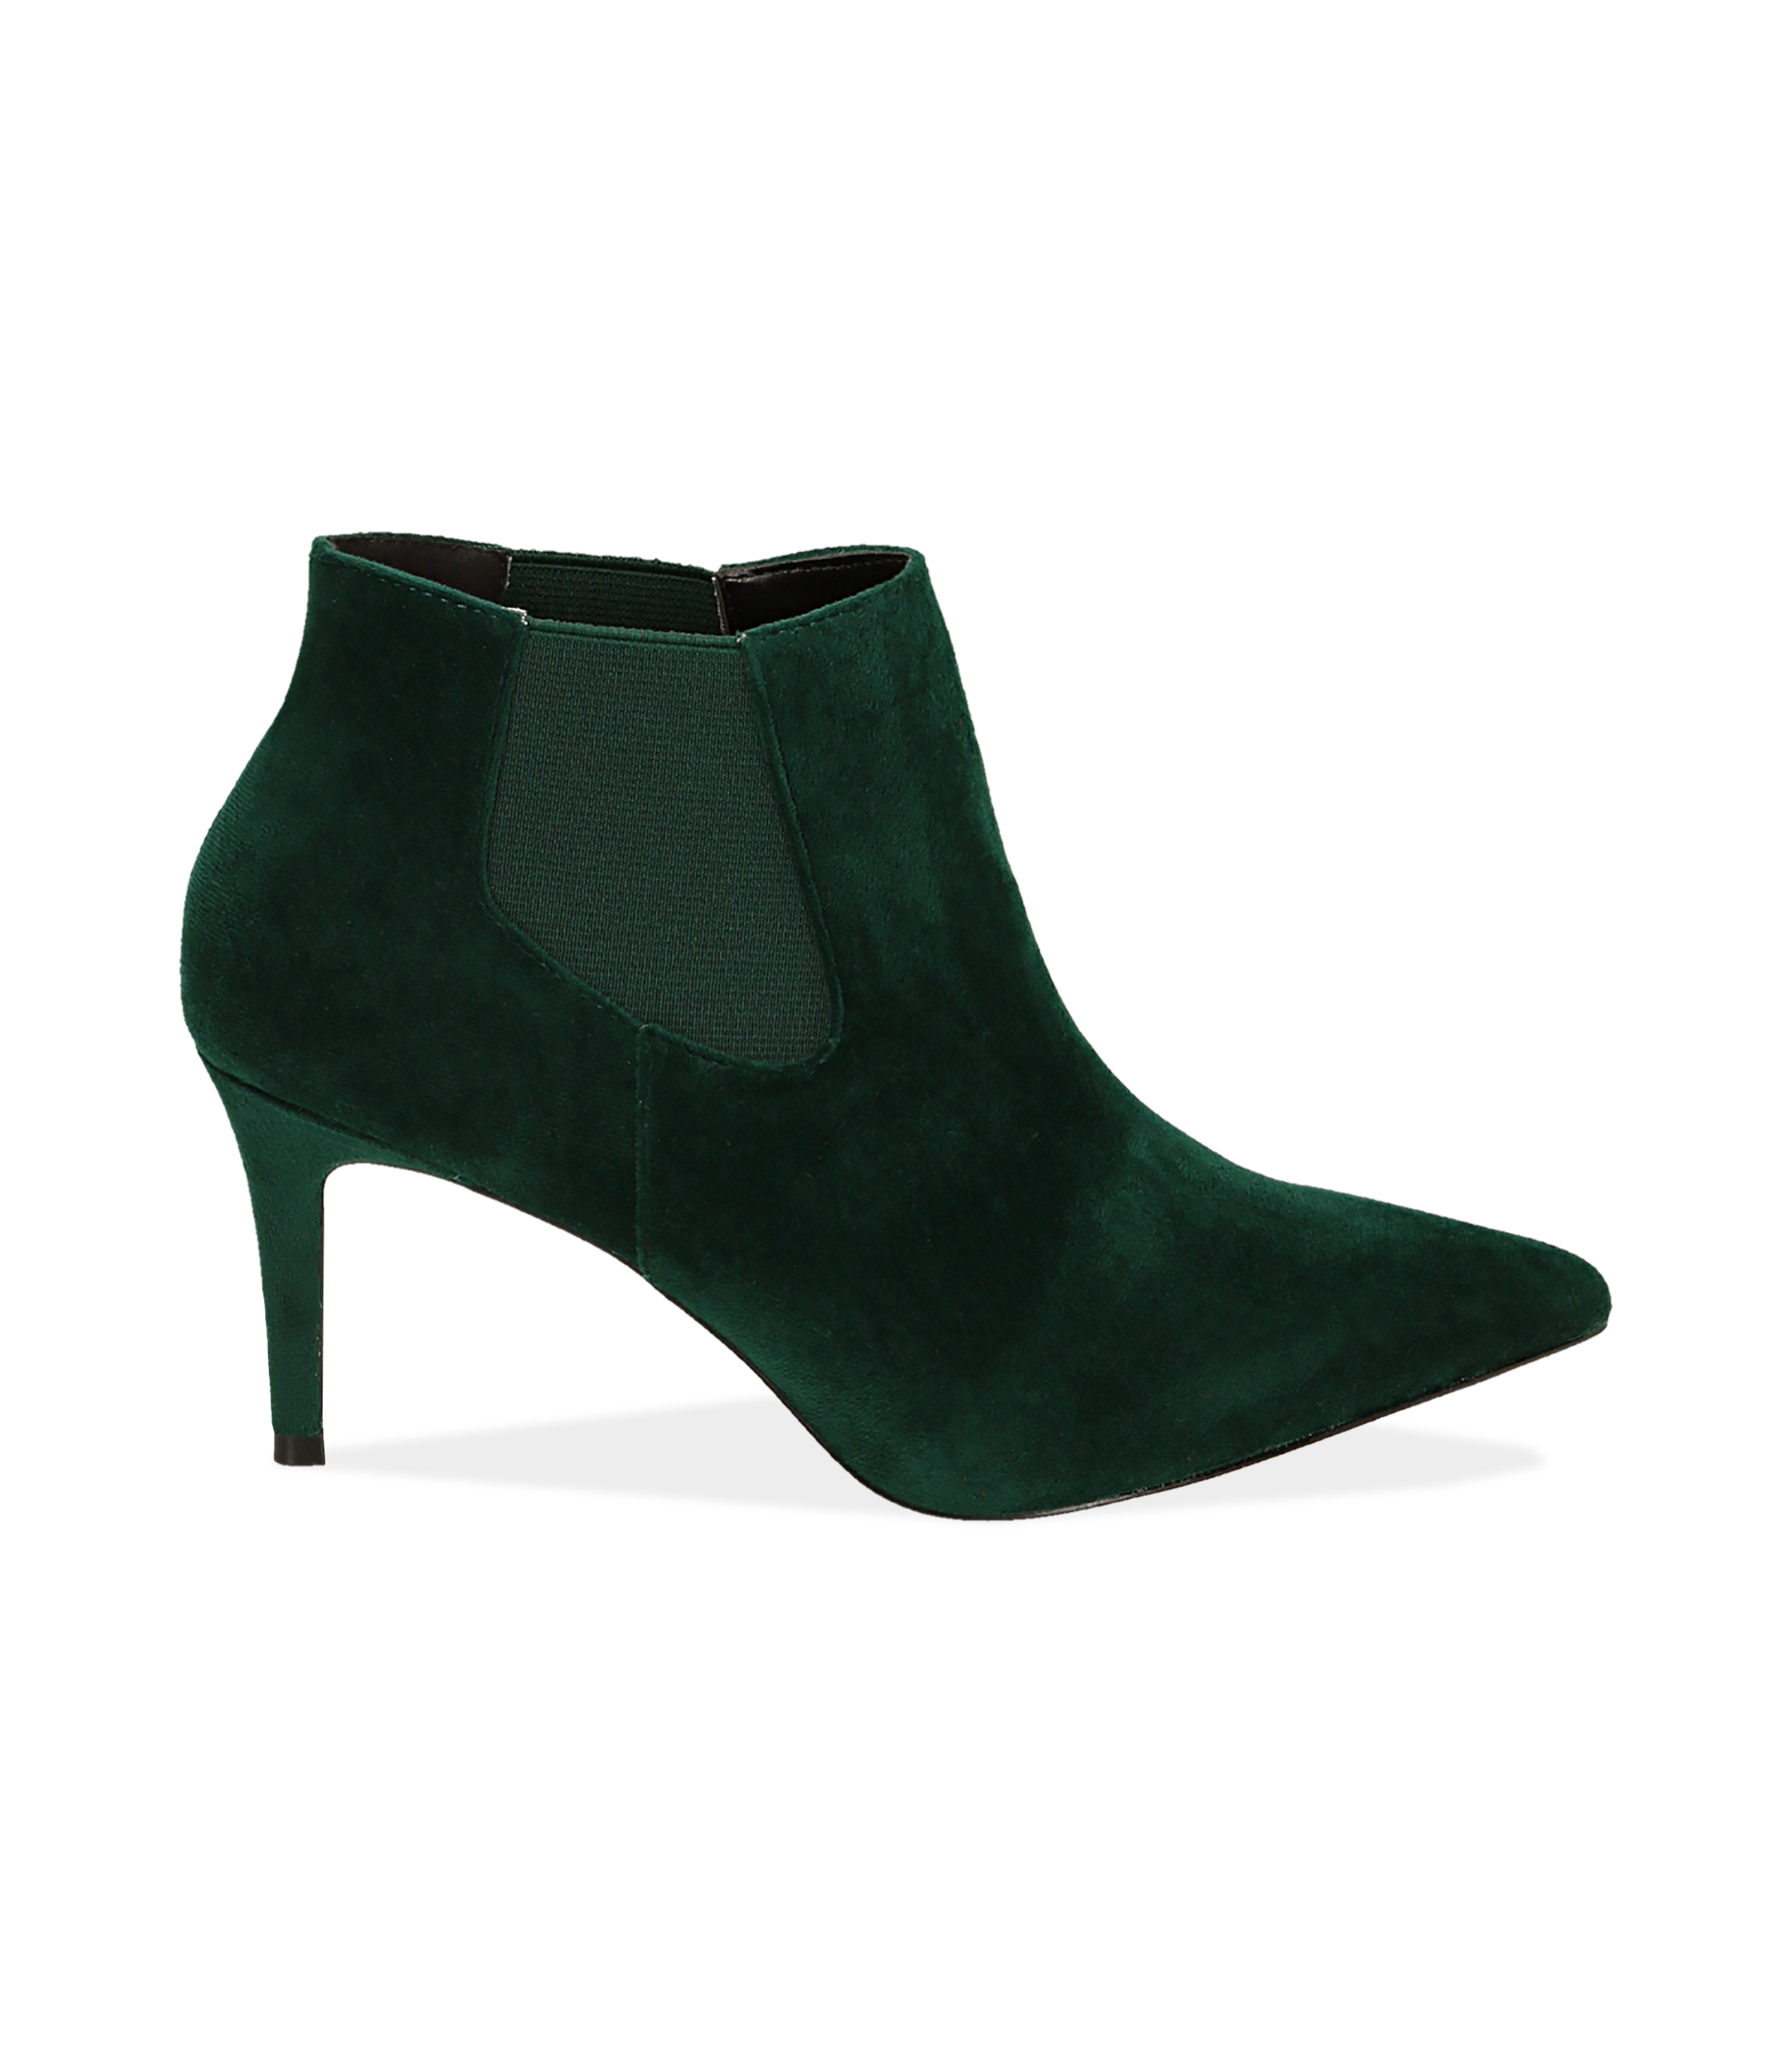 Ankle boots verdi in velluto